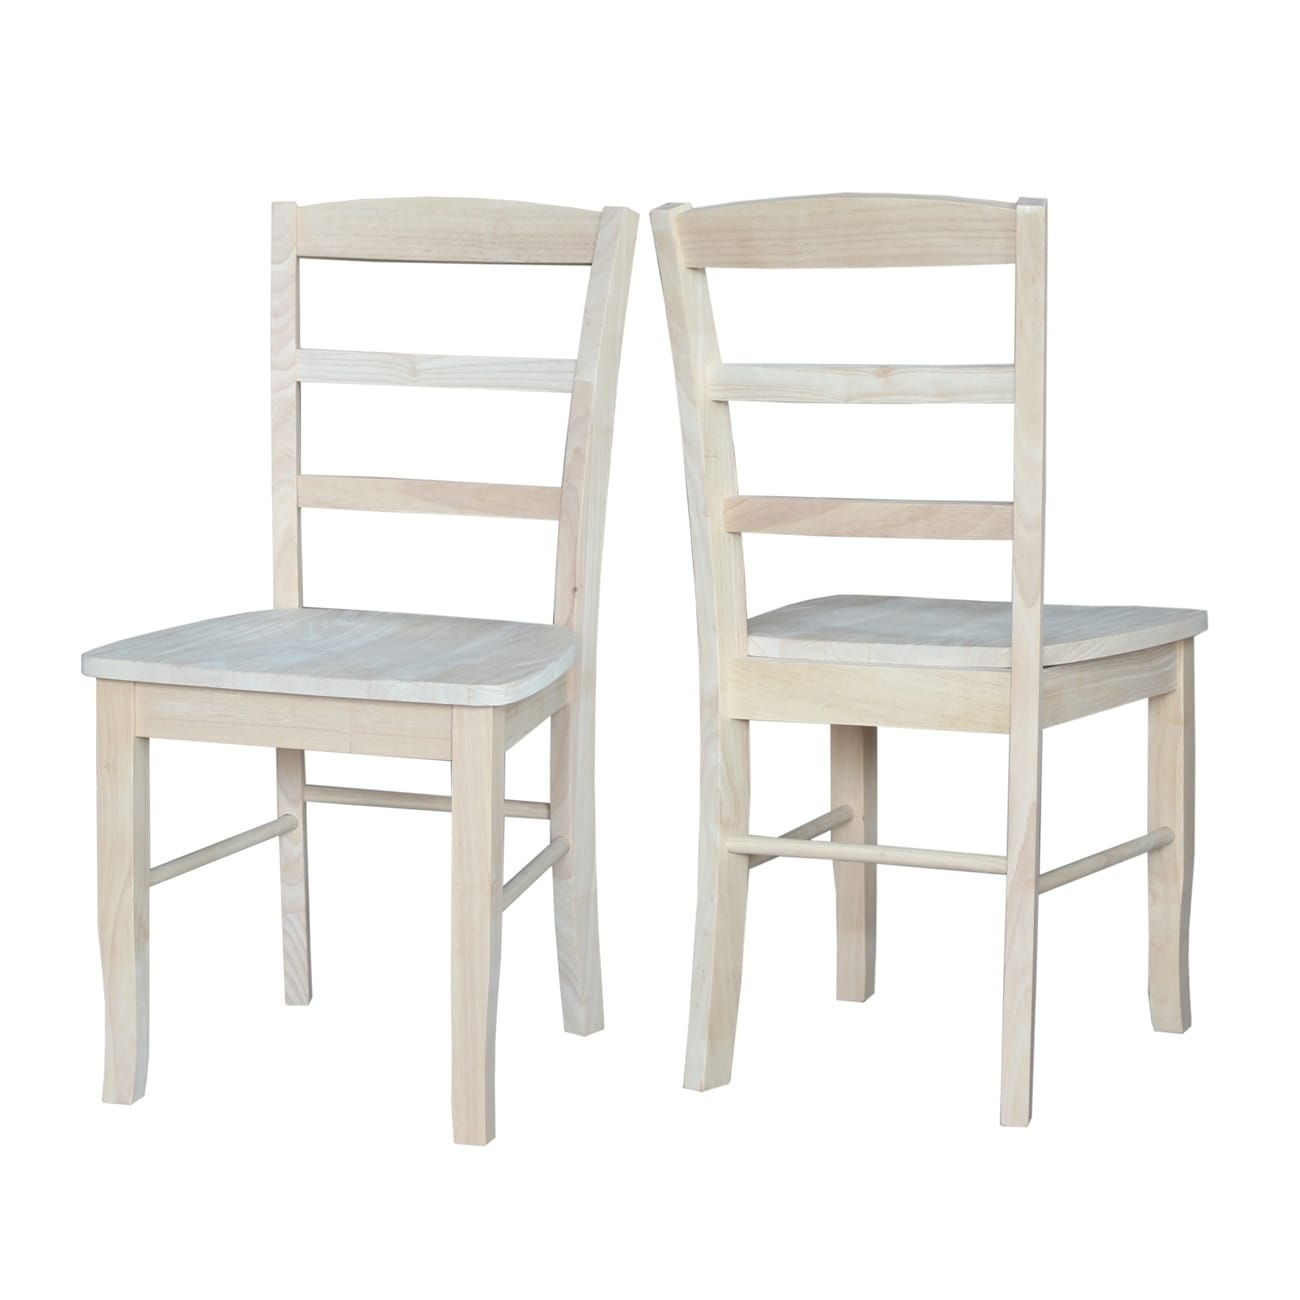 International Concepts Unfinished Solid Parawood Madrid Dining Chair Set Of 2 Free Shipping Today 9363326